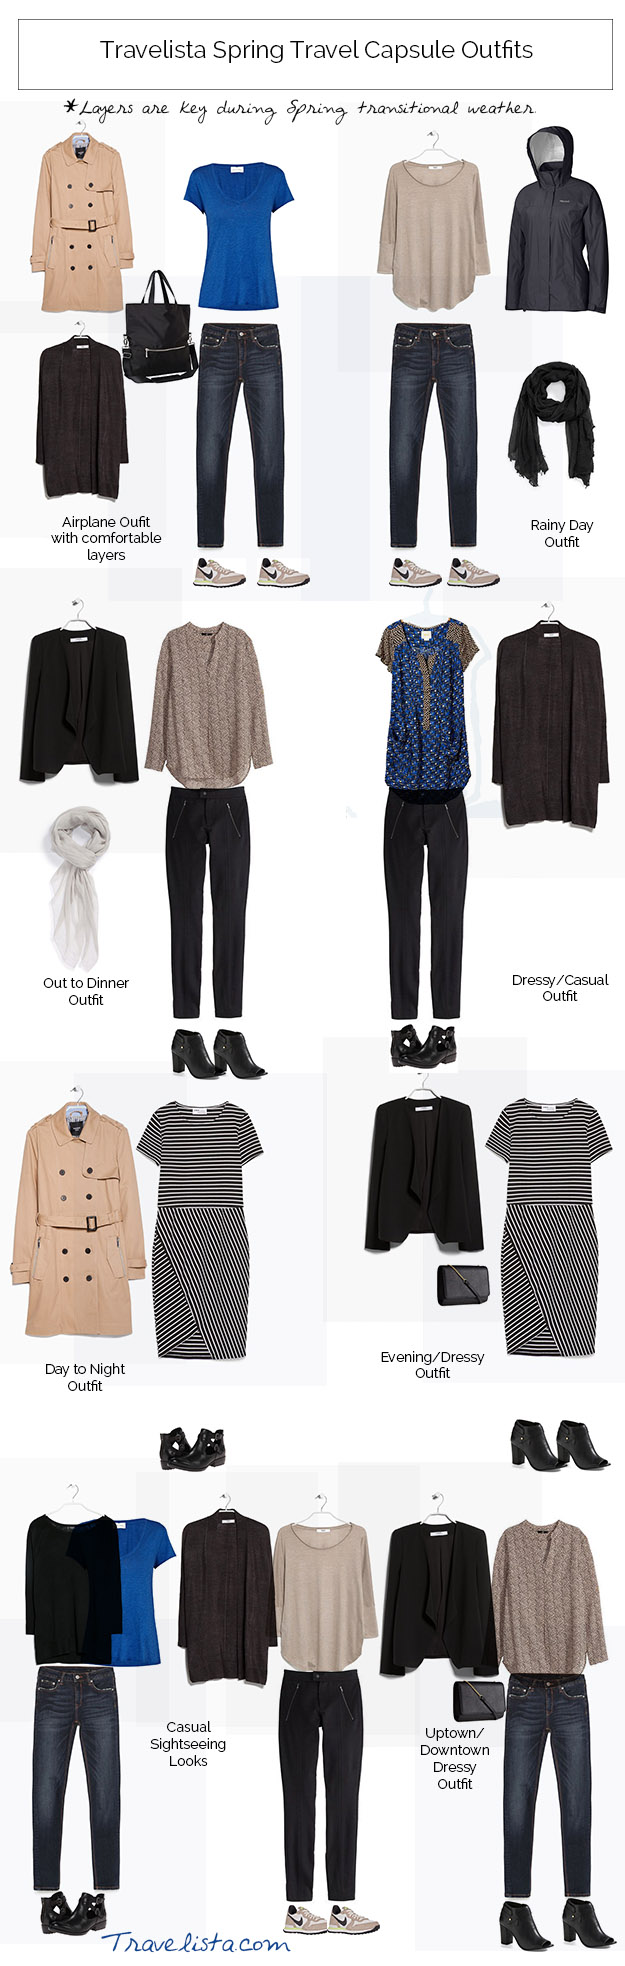 SPRING TRAVEL CAPSULE OUTFITS